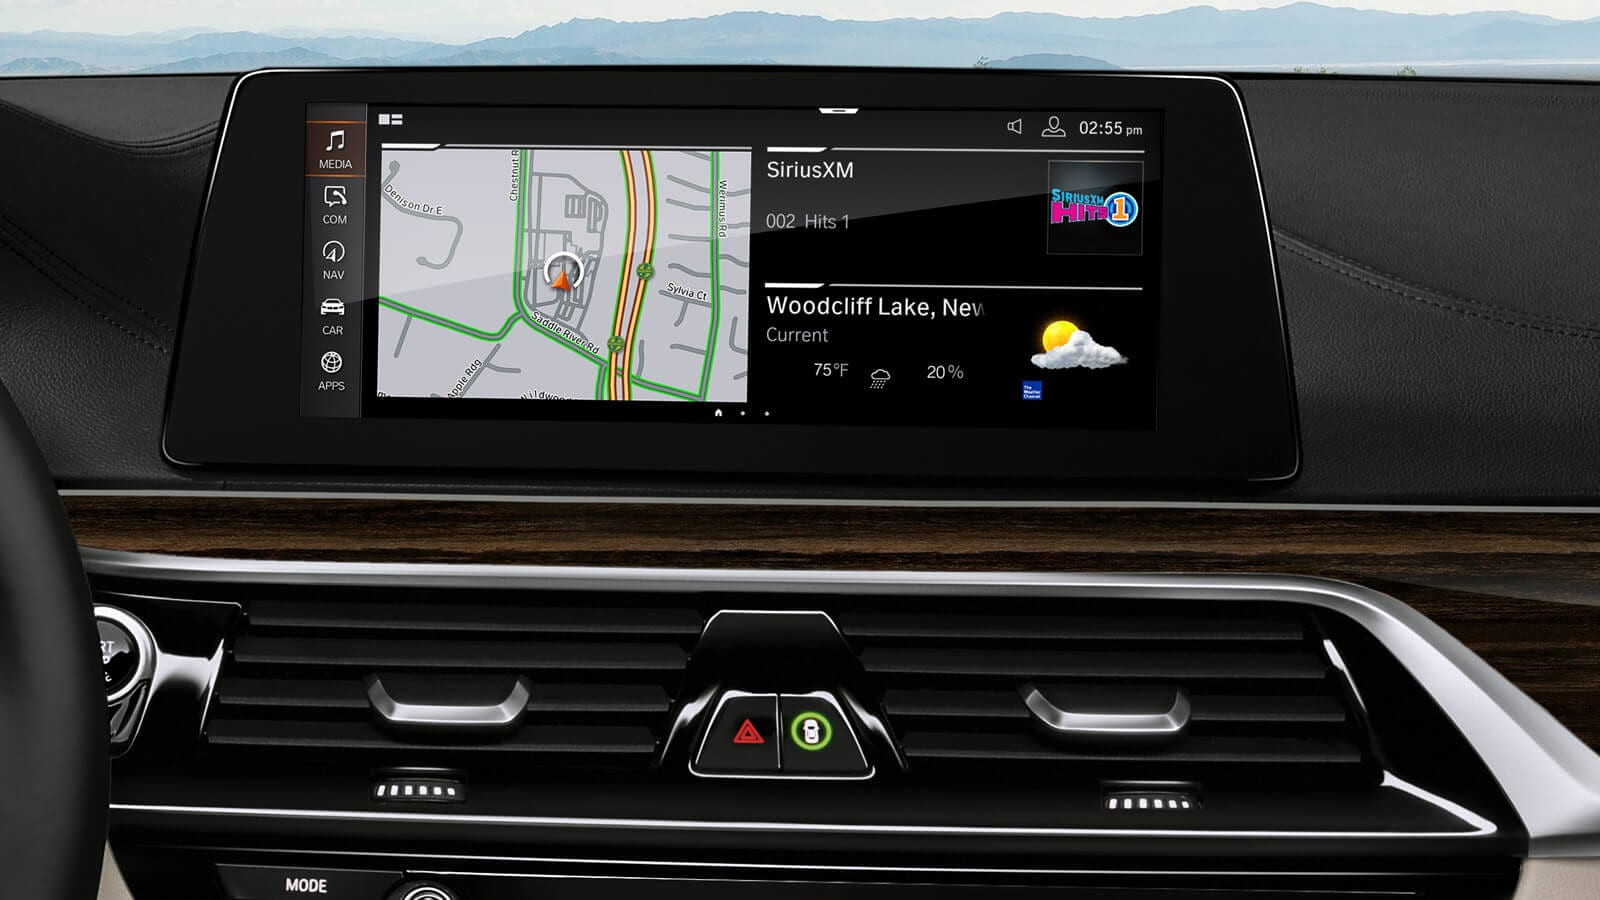 2019 BMW 5 Series Touchscreen